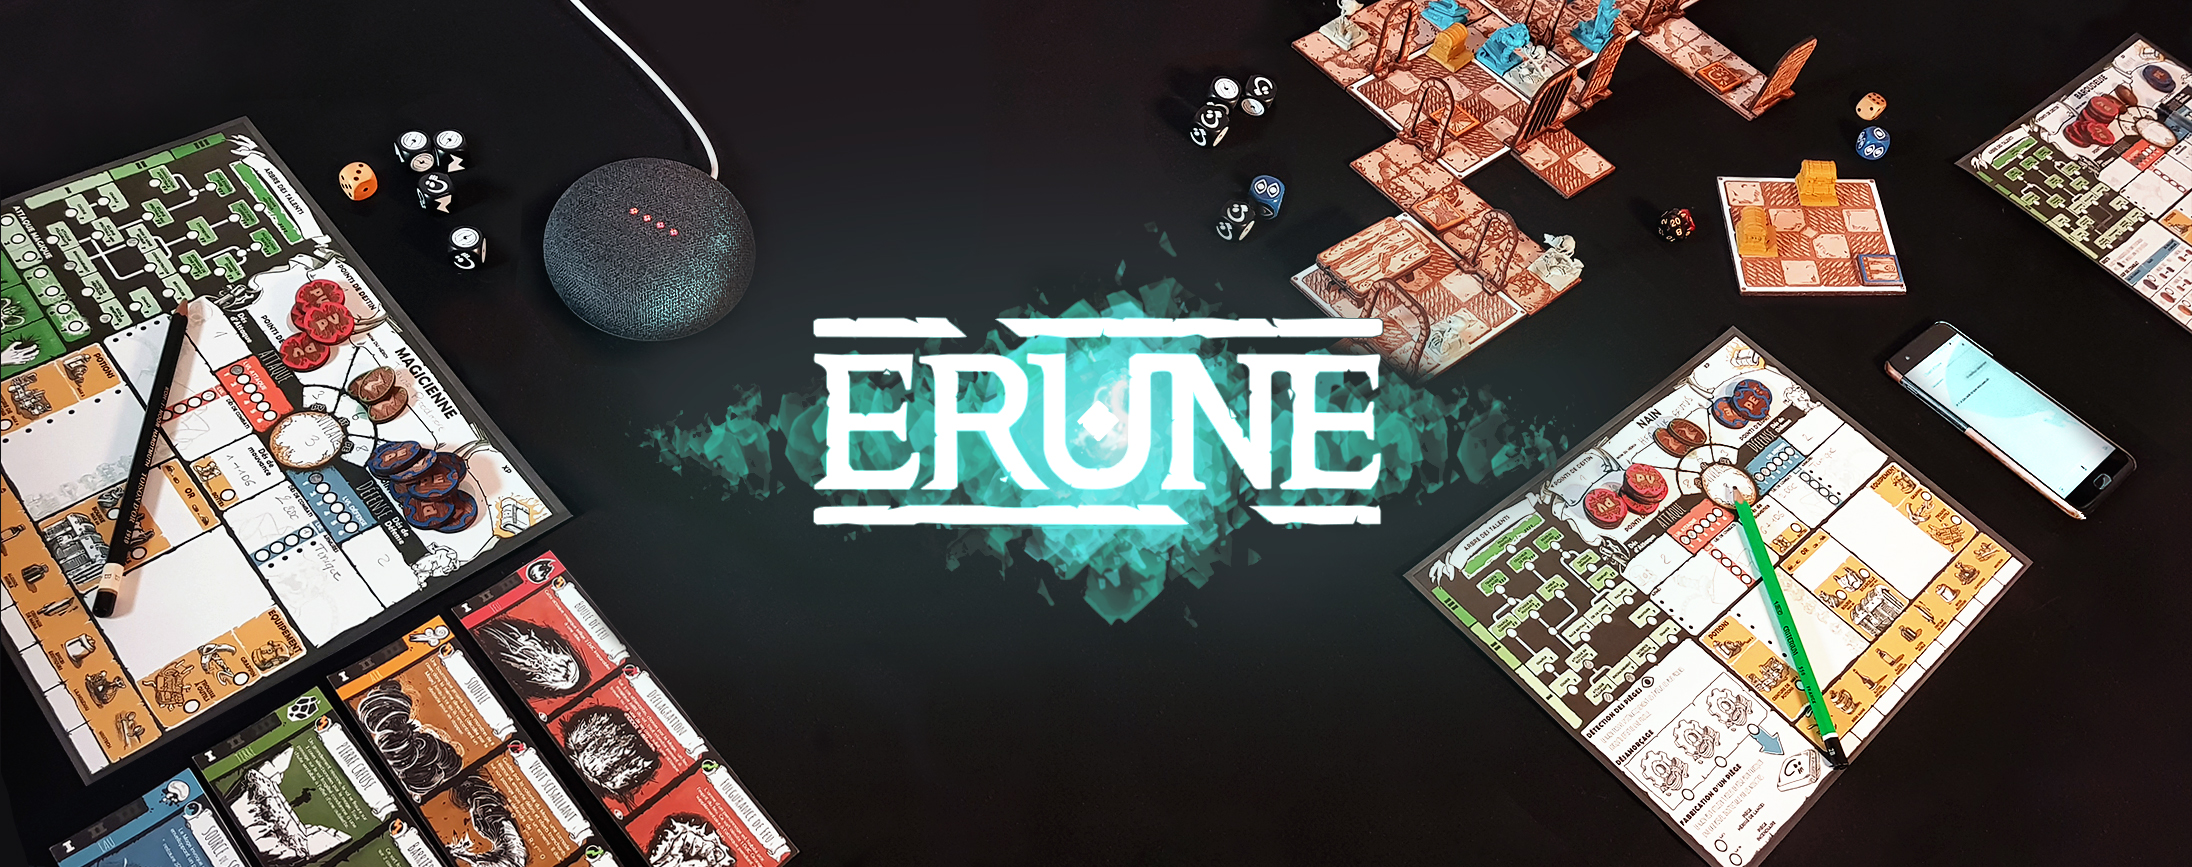 erune_presentationv3_website.jpg